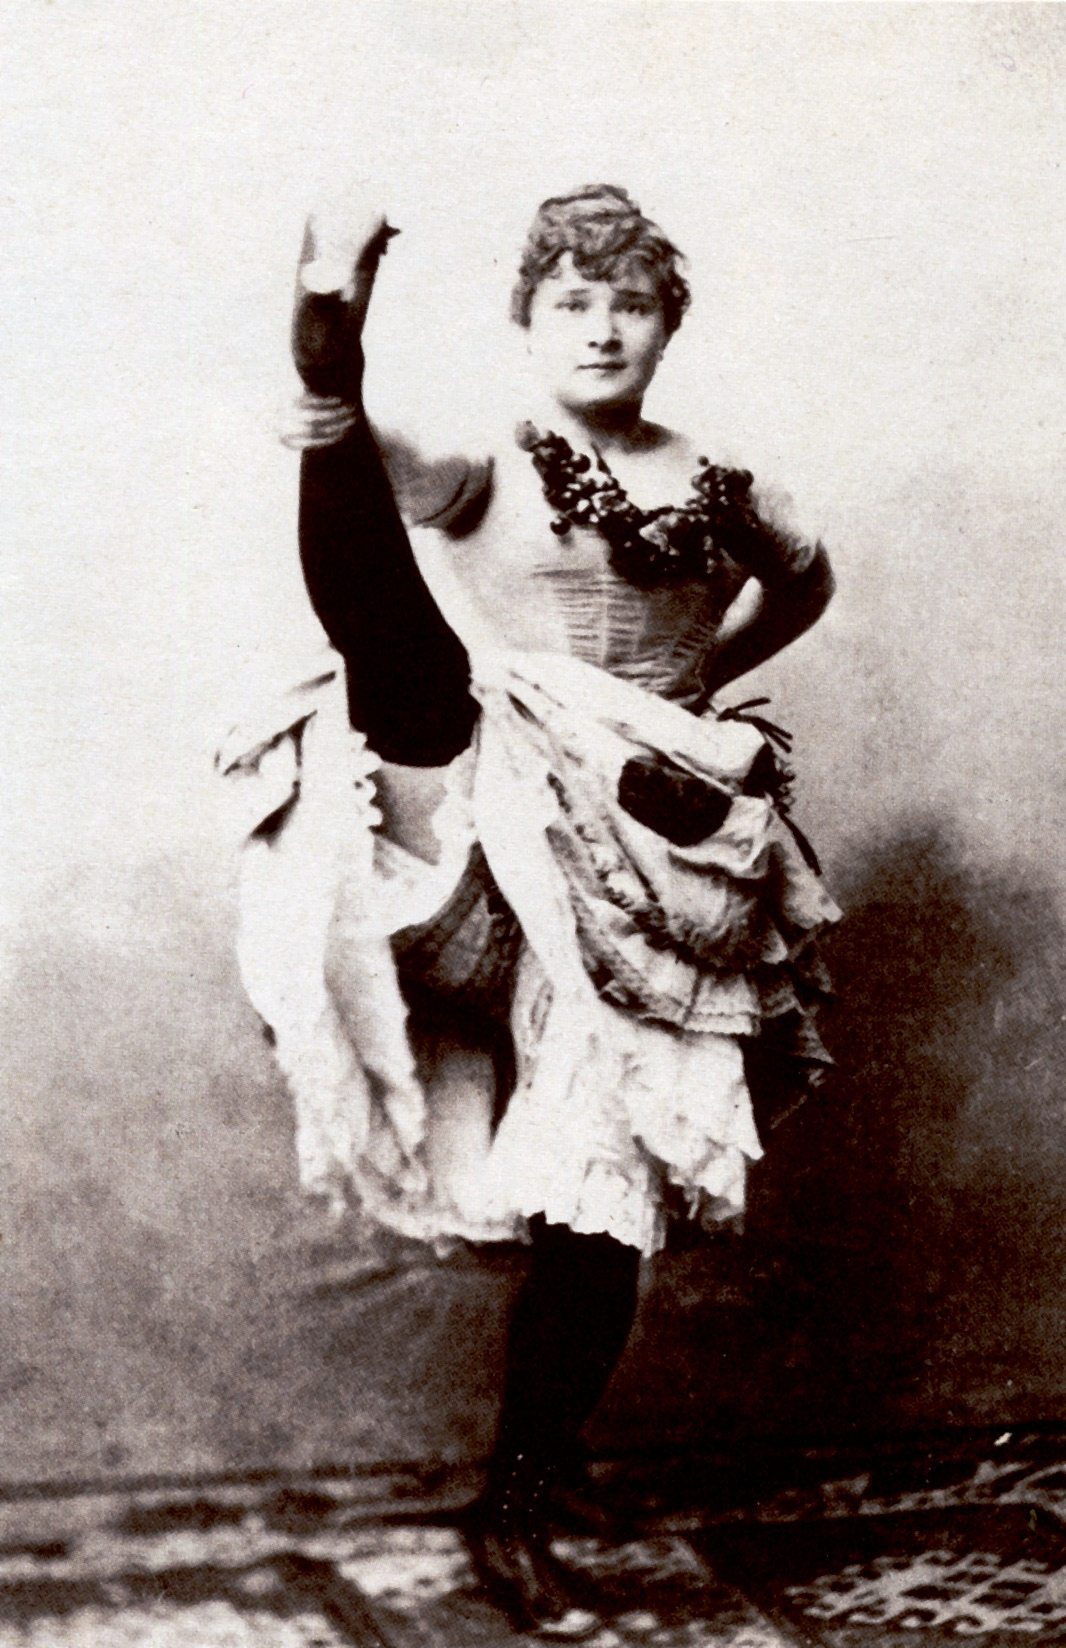 Photo La Goulue, ca. 1895